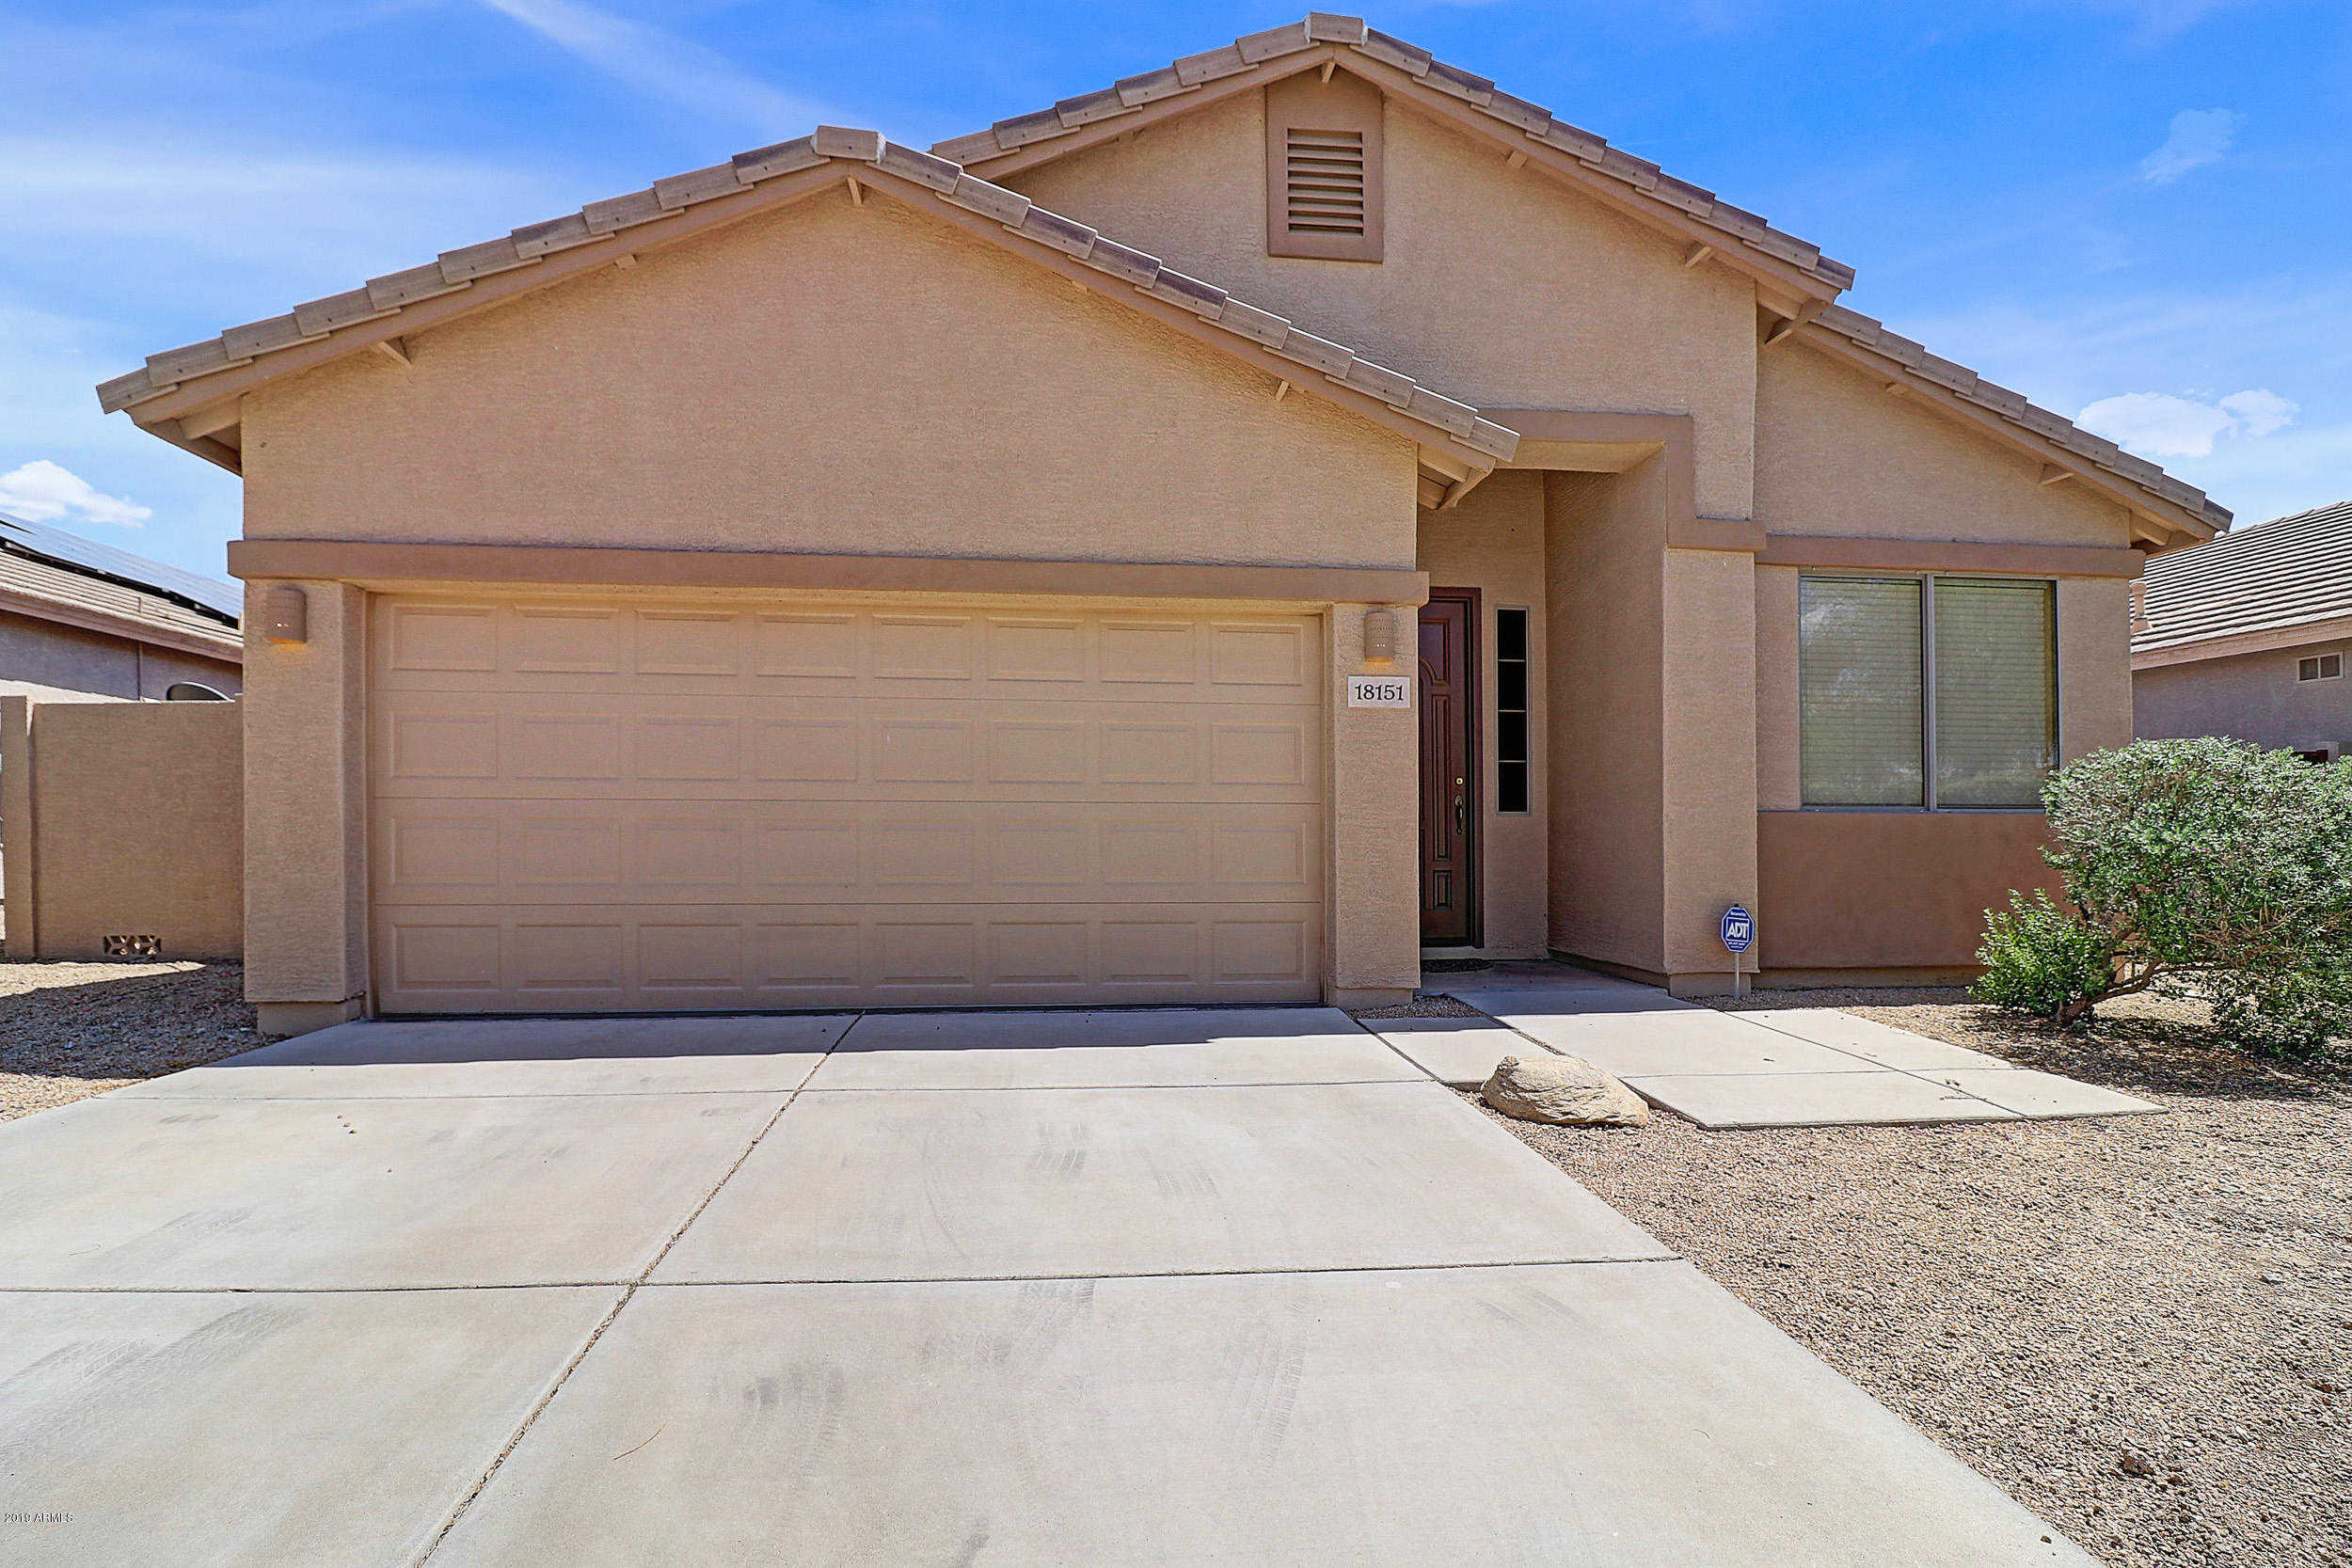 $239,999 - 4Br/2Ba - Home for Sale in Sunchase At Estrella Parcel 52 Amd, Goodyear